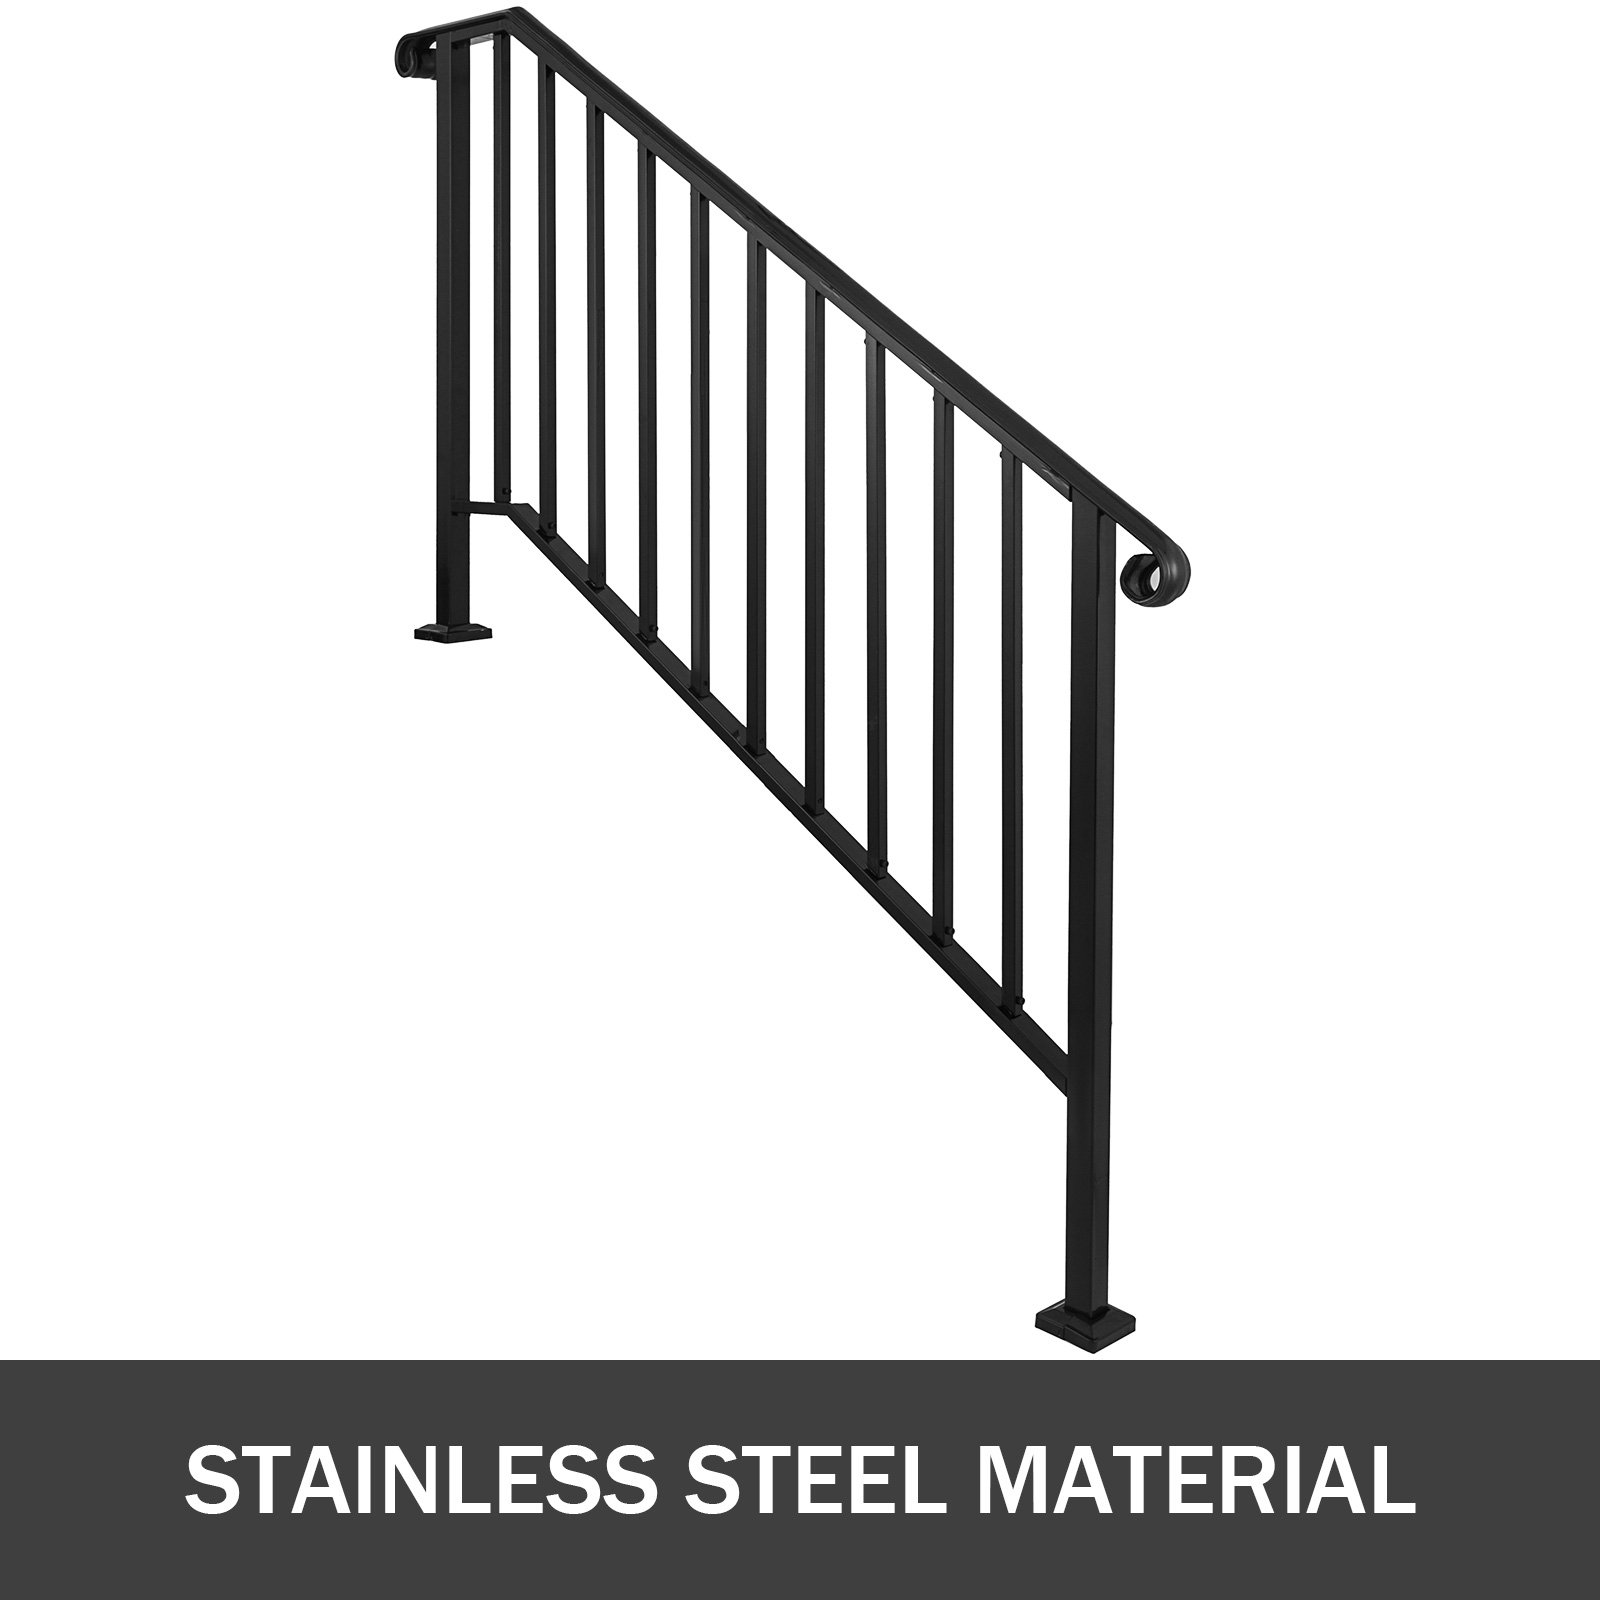 50 Outdoor Metal Stair Railing Kits You Ll Love In 2020 Visual Hunt | Outdoor Iron Stair Railing | Garden | Flat Iron | Decorative | Deck | Rustic